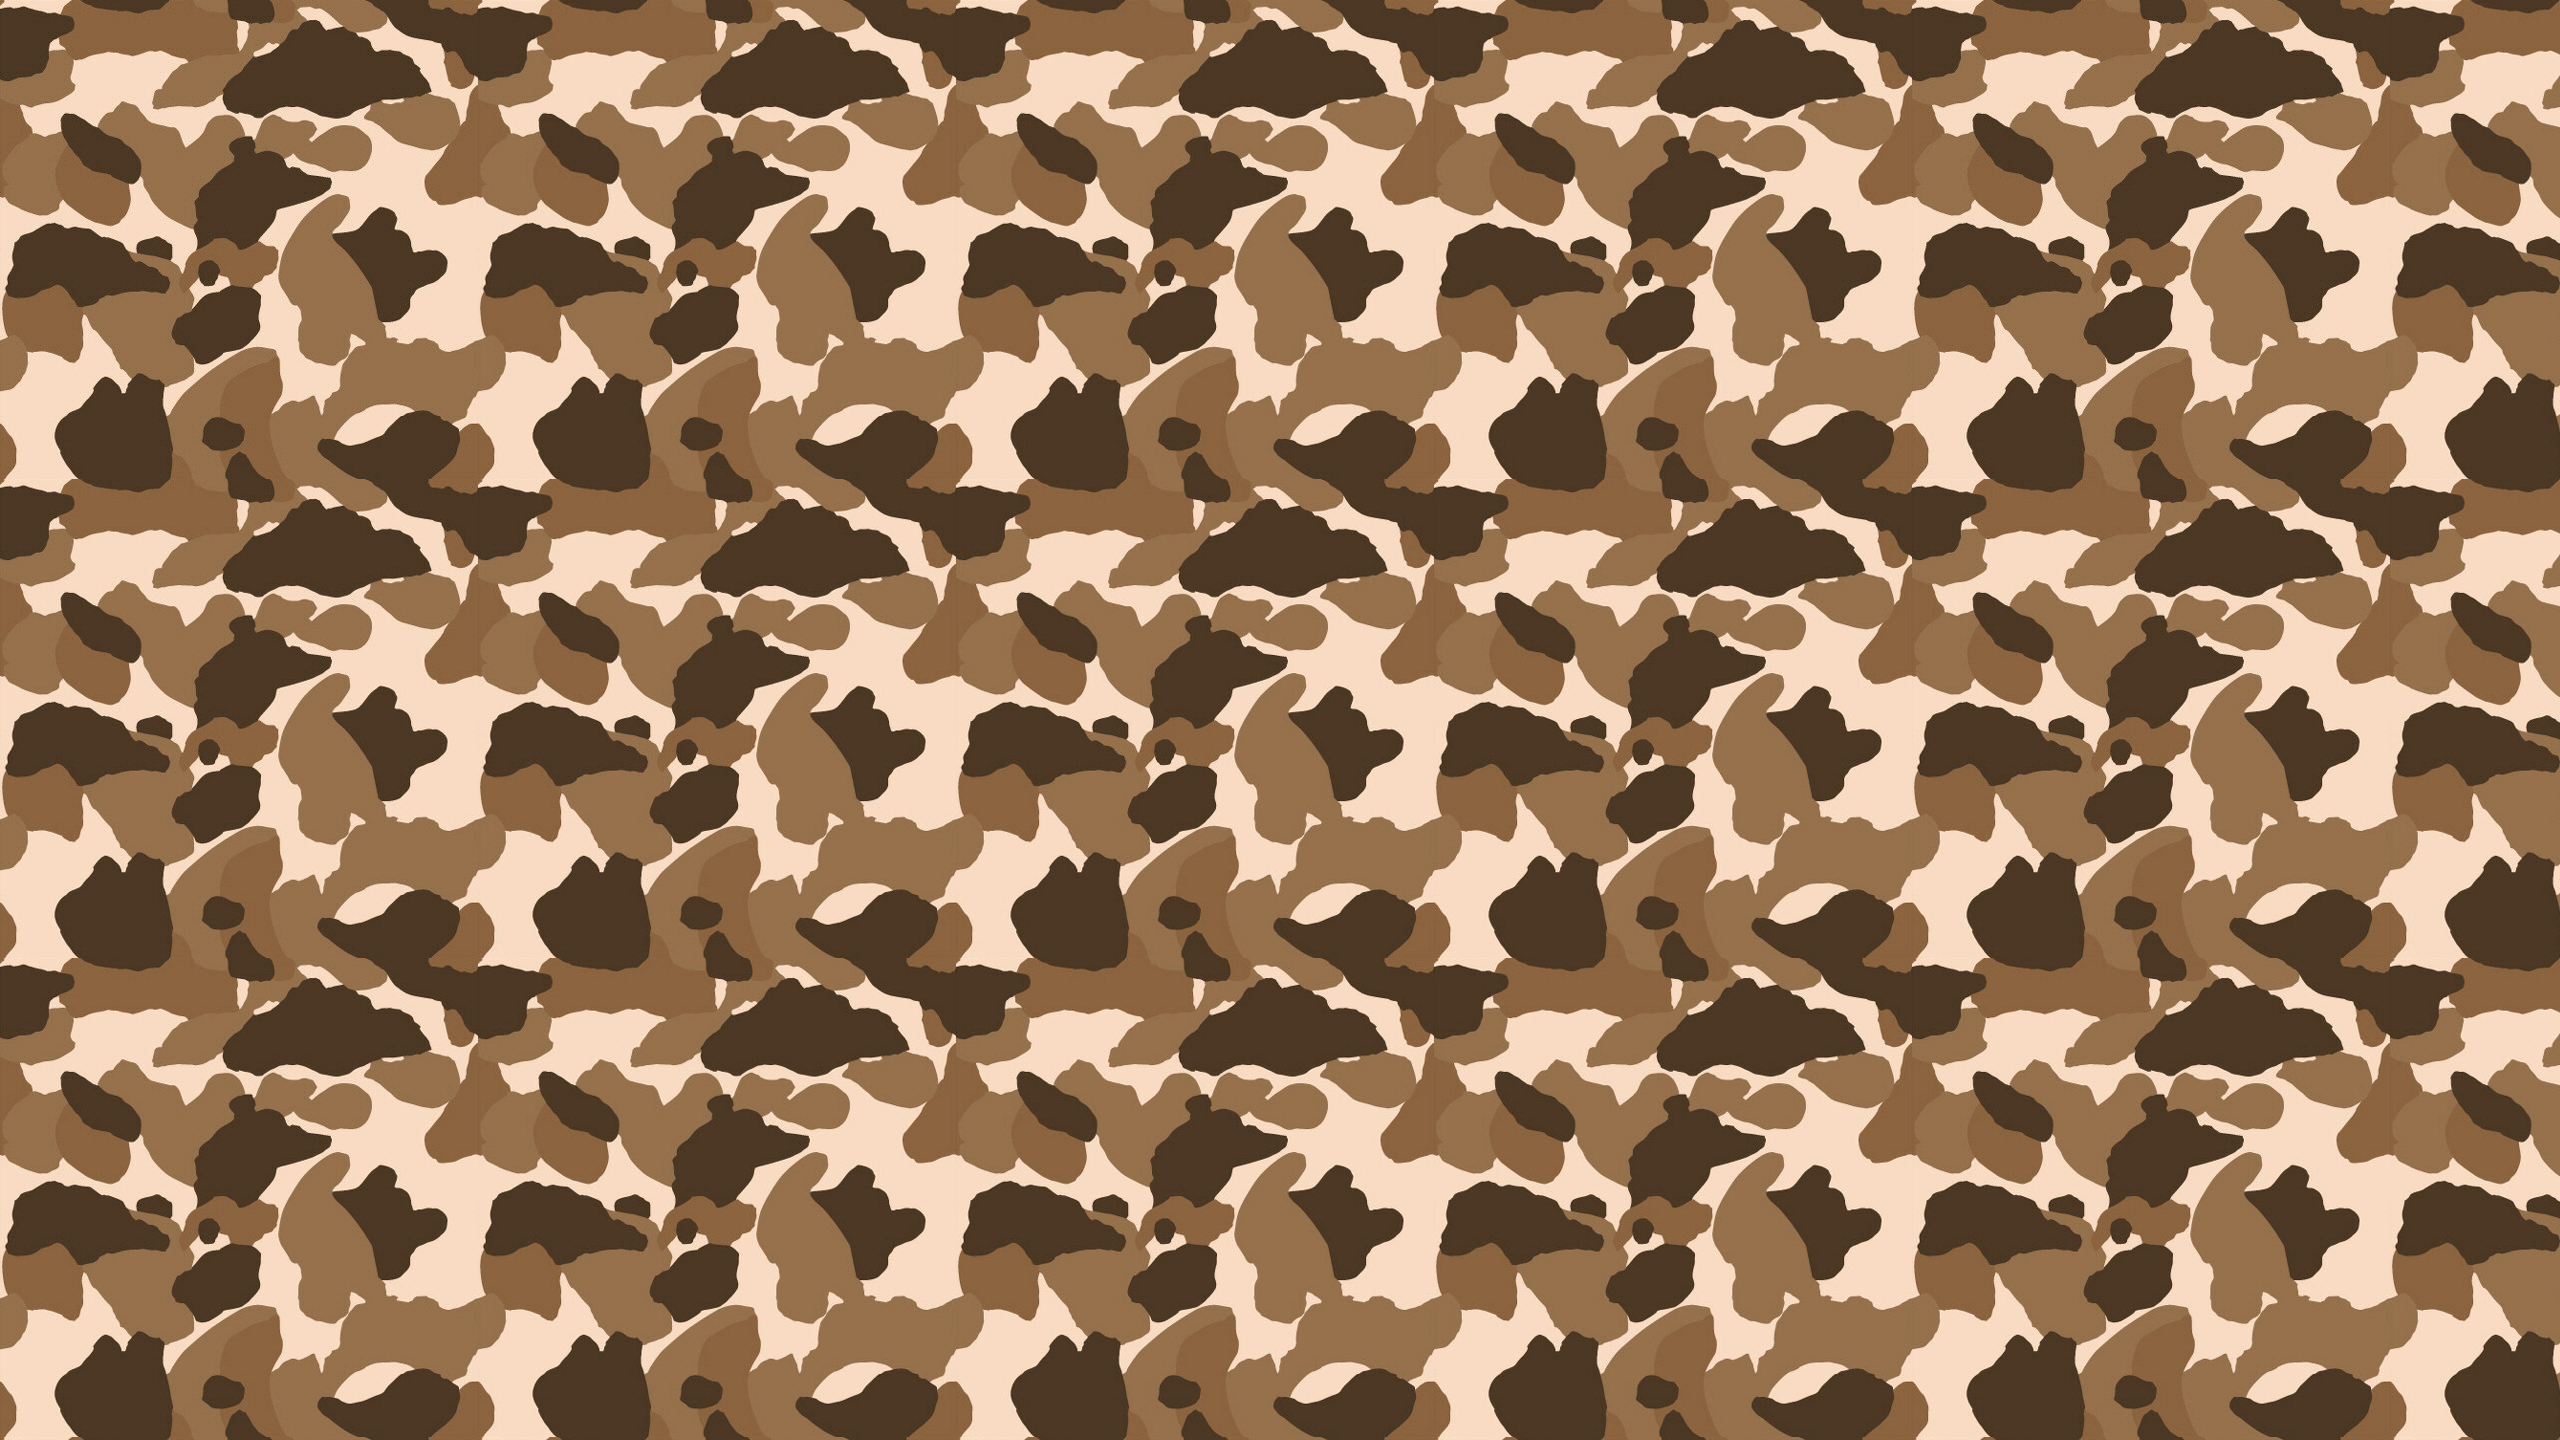 Pictures realtree color camo fabric by the yard on sale realtree com 2560x1440